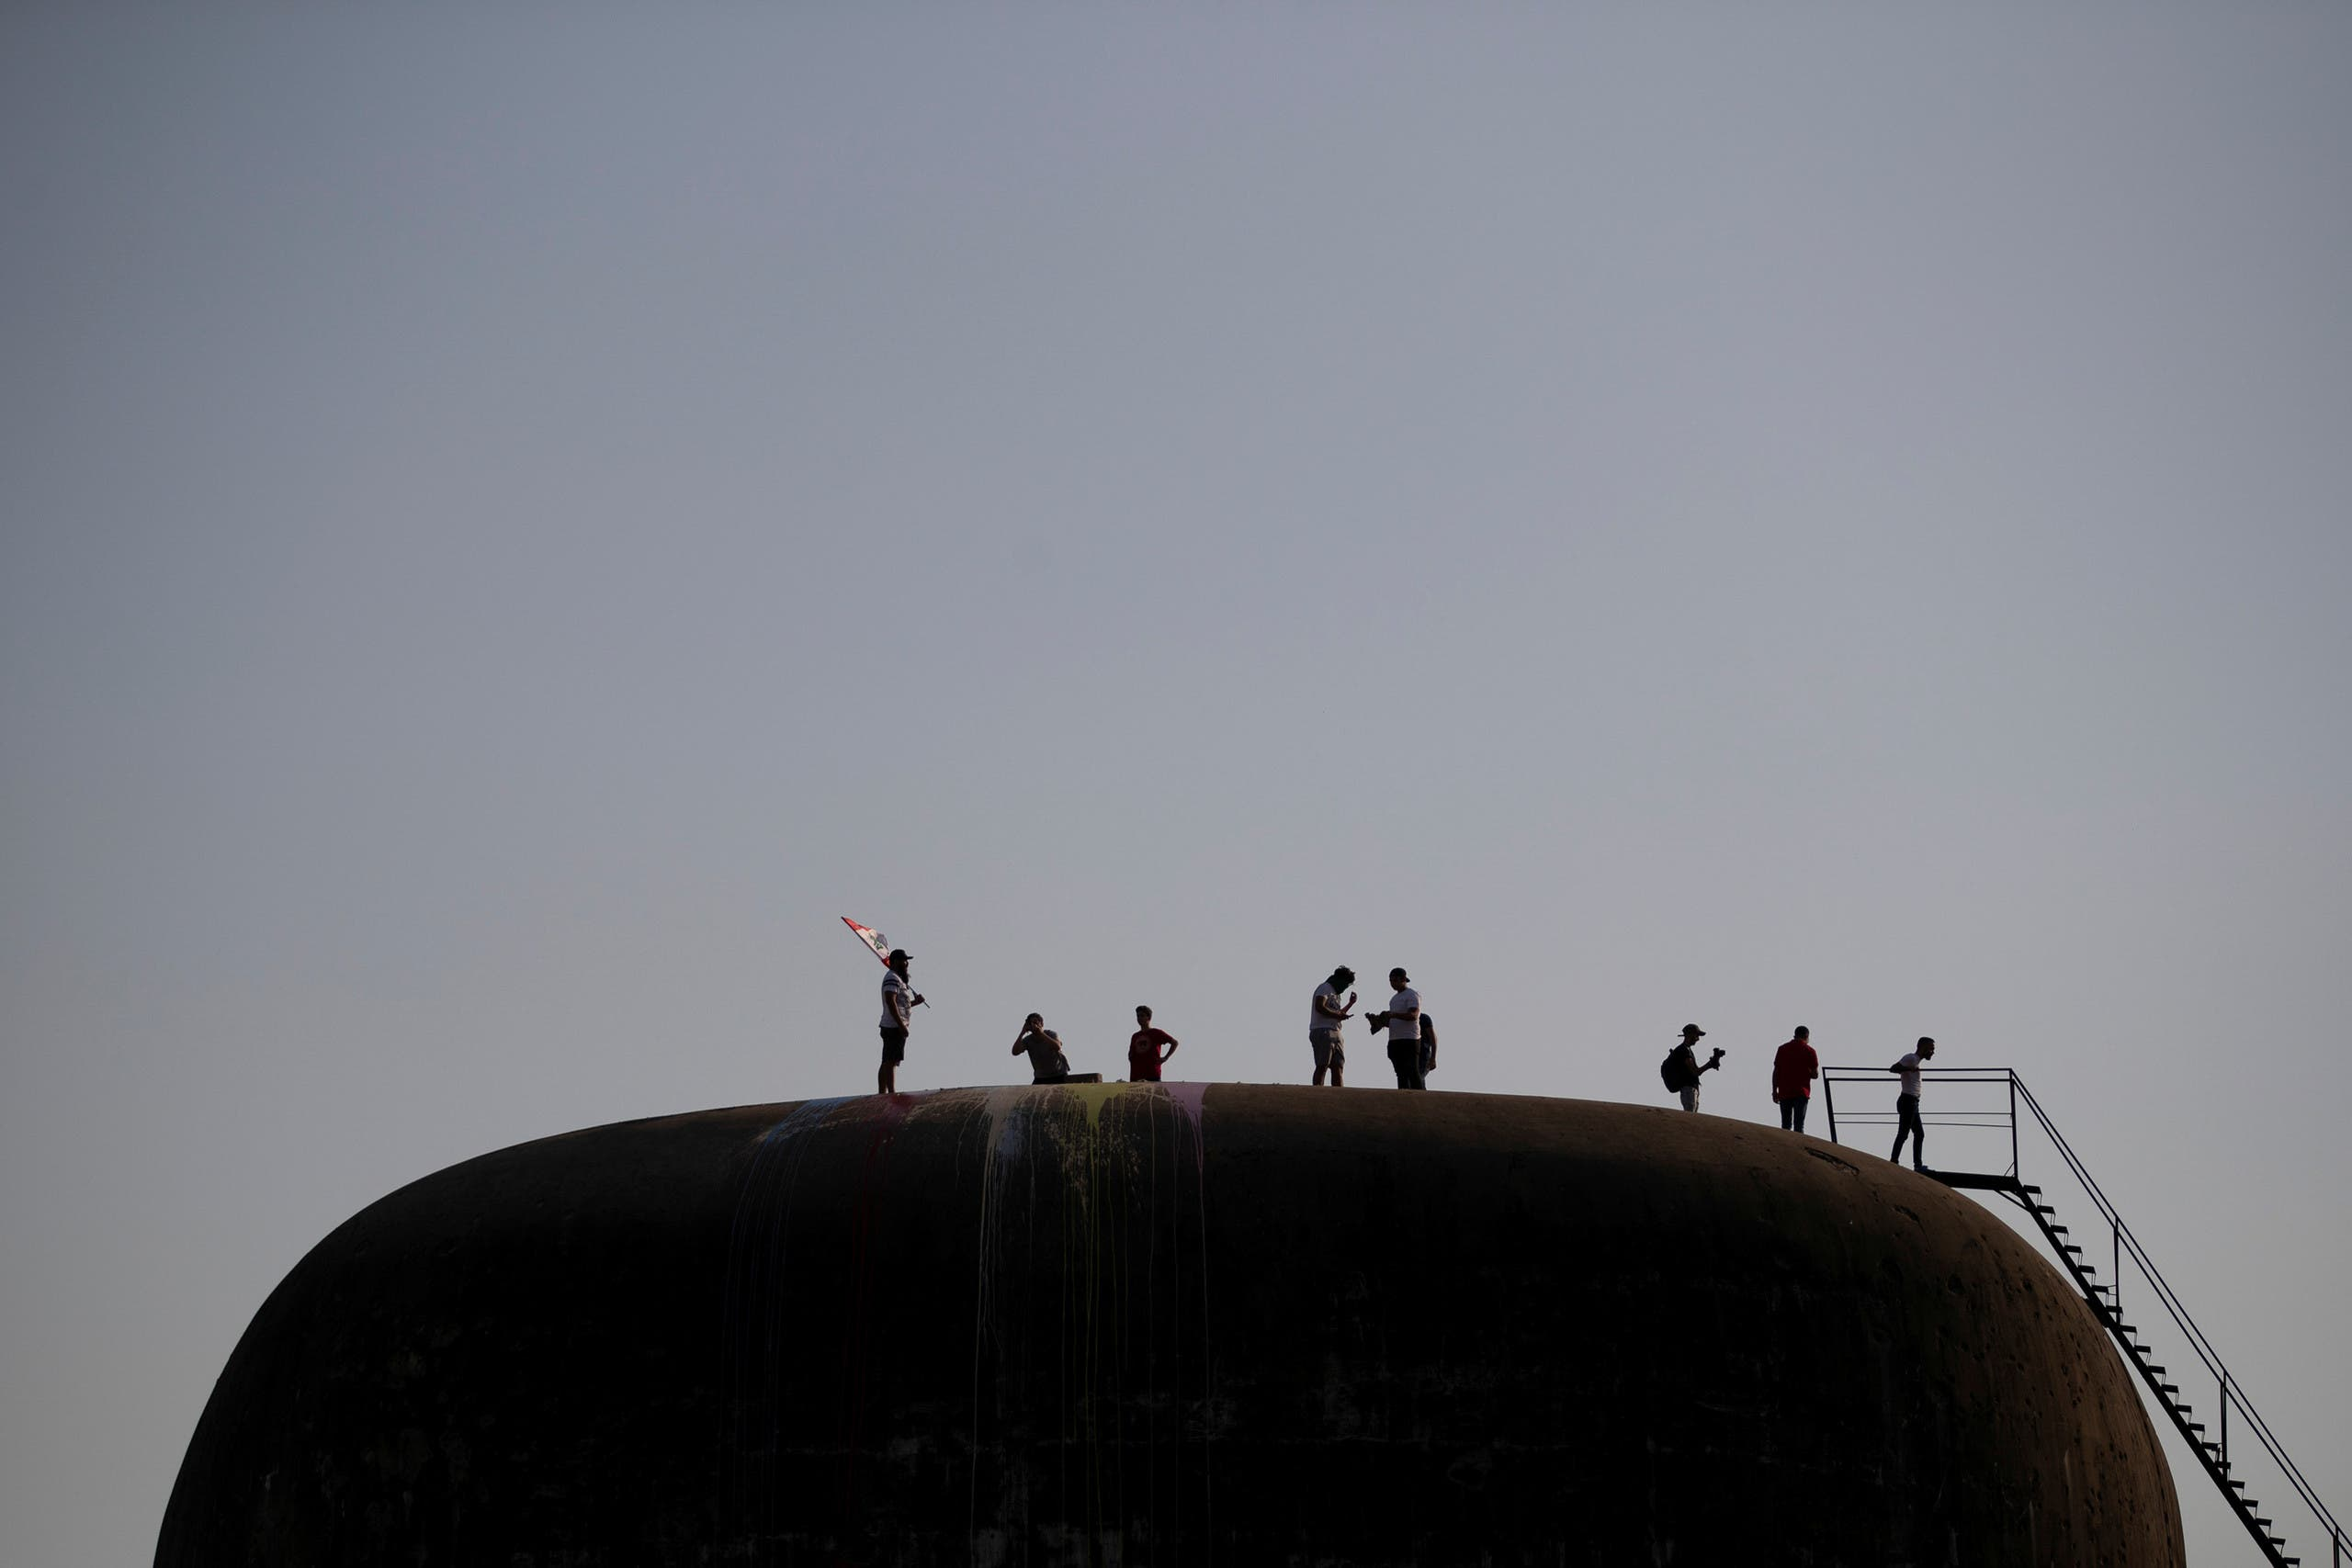 Demonstrators stand on the rooftop of the Egg, an abandoned cinema building in Beirut, Lebanon, October 22, 2019. (Reuters)